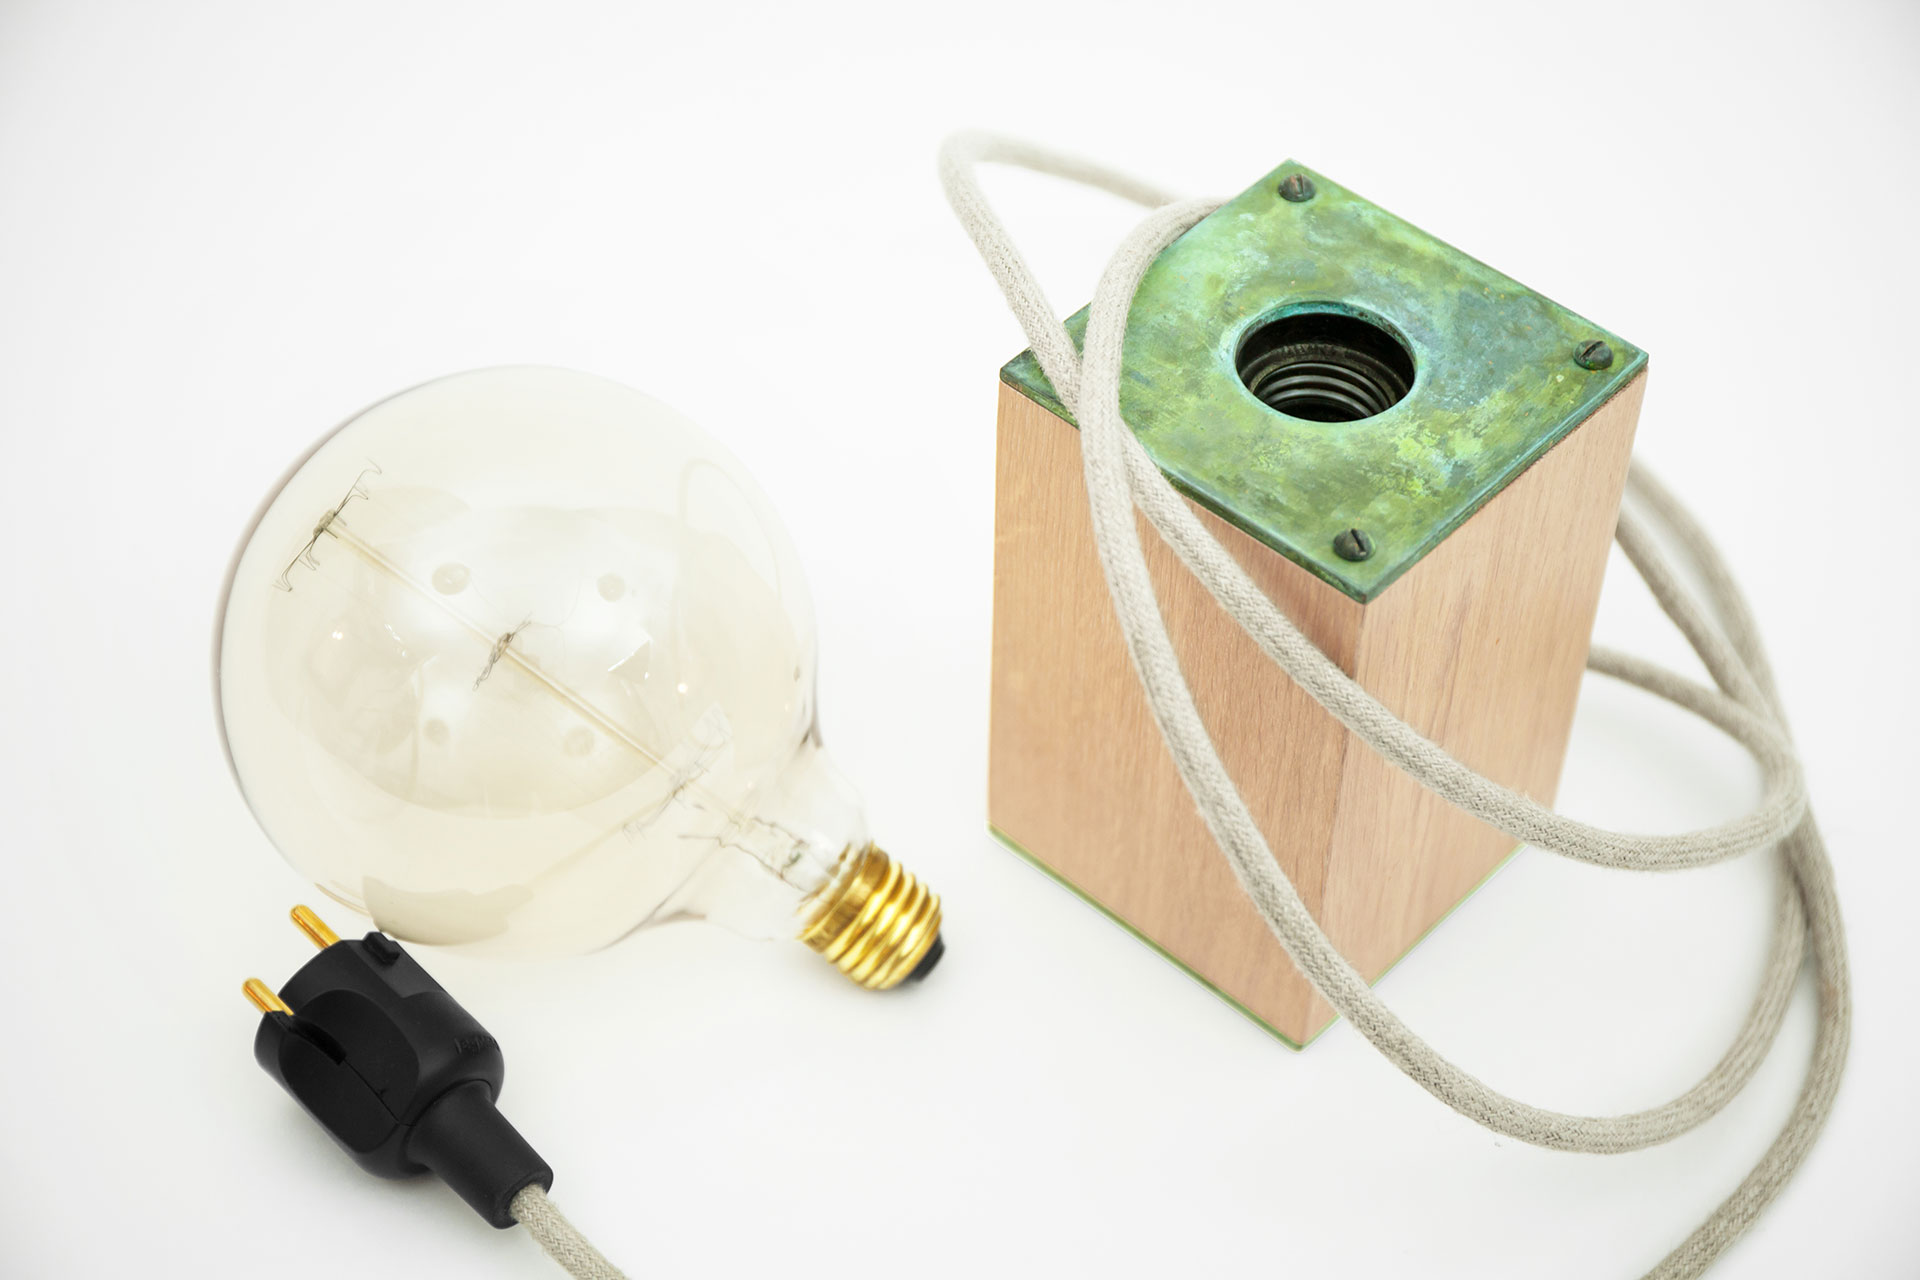 Wooden bedside lamp with natural green patina and built-in touch dimmer manufactured by european design studio